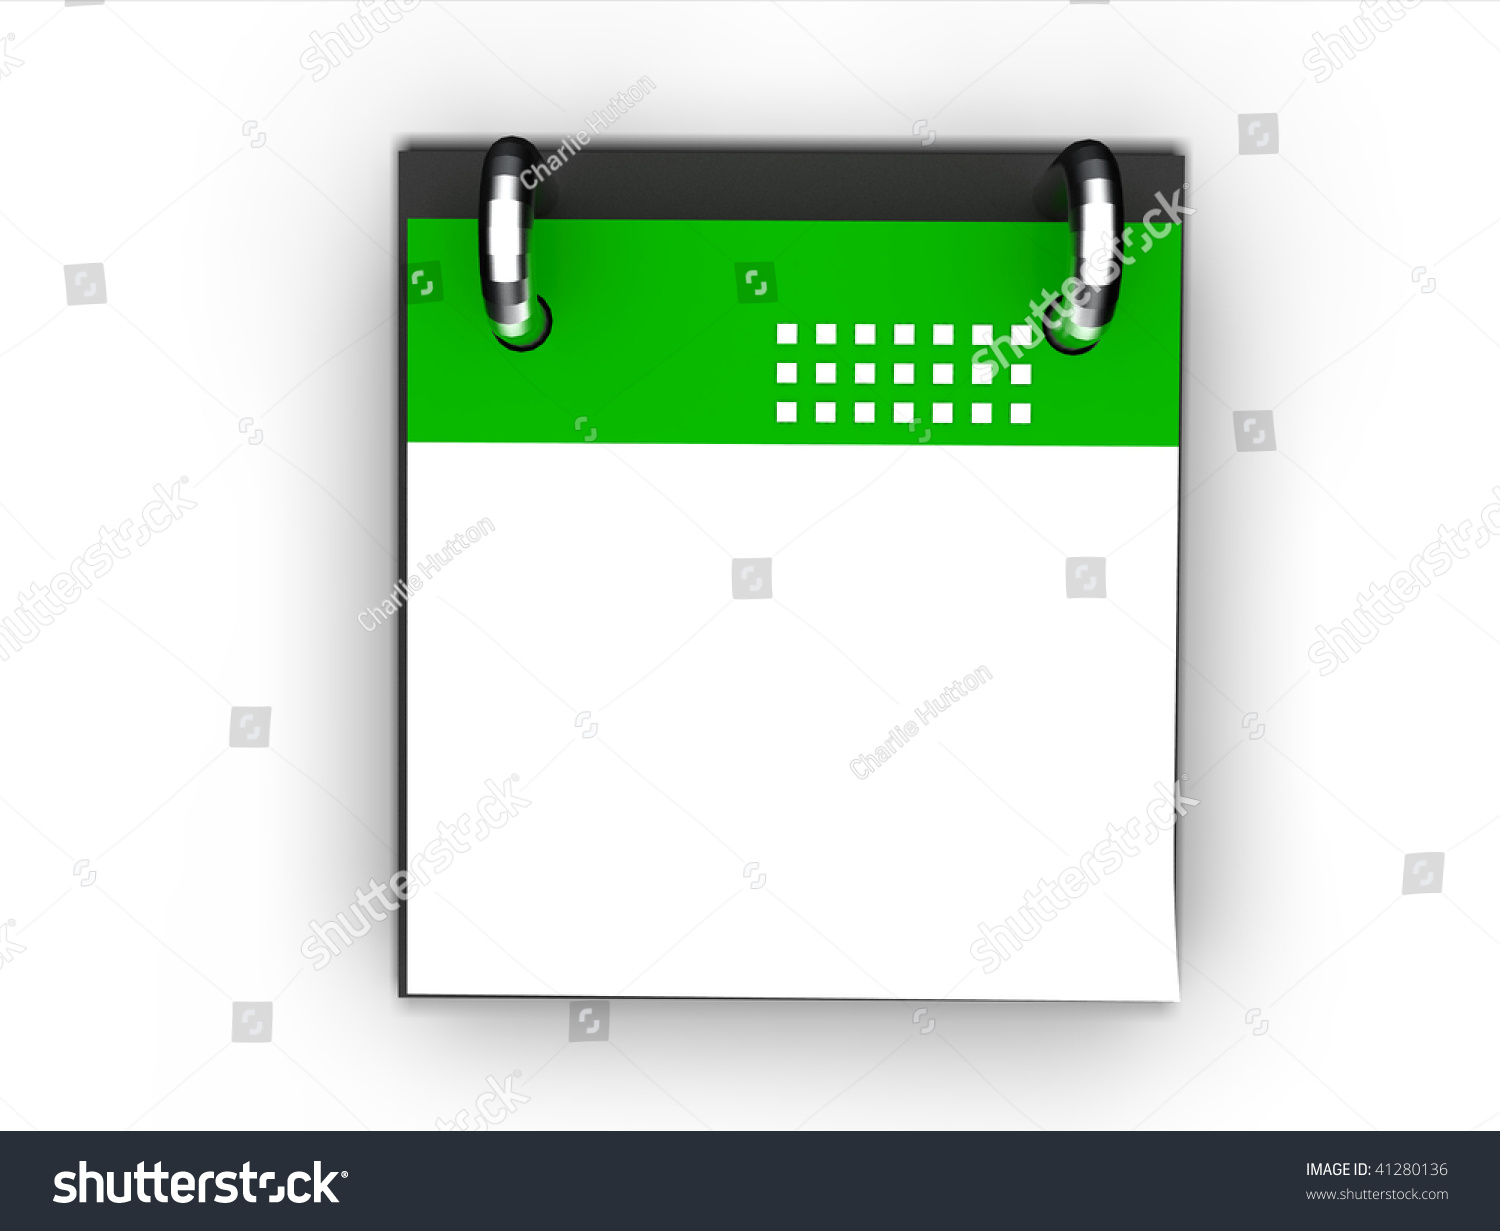 Blank Calendar Icon Green : Blank green calendar icon isolated stock photo